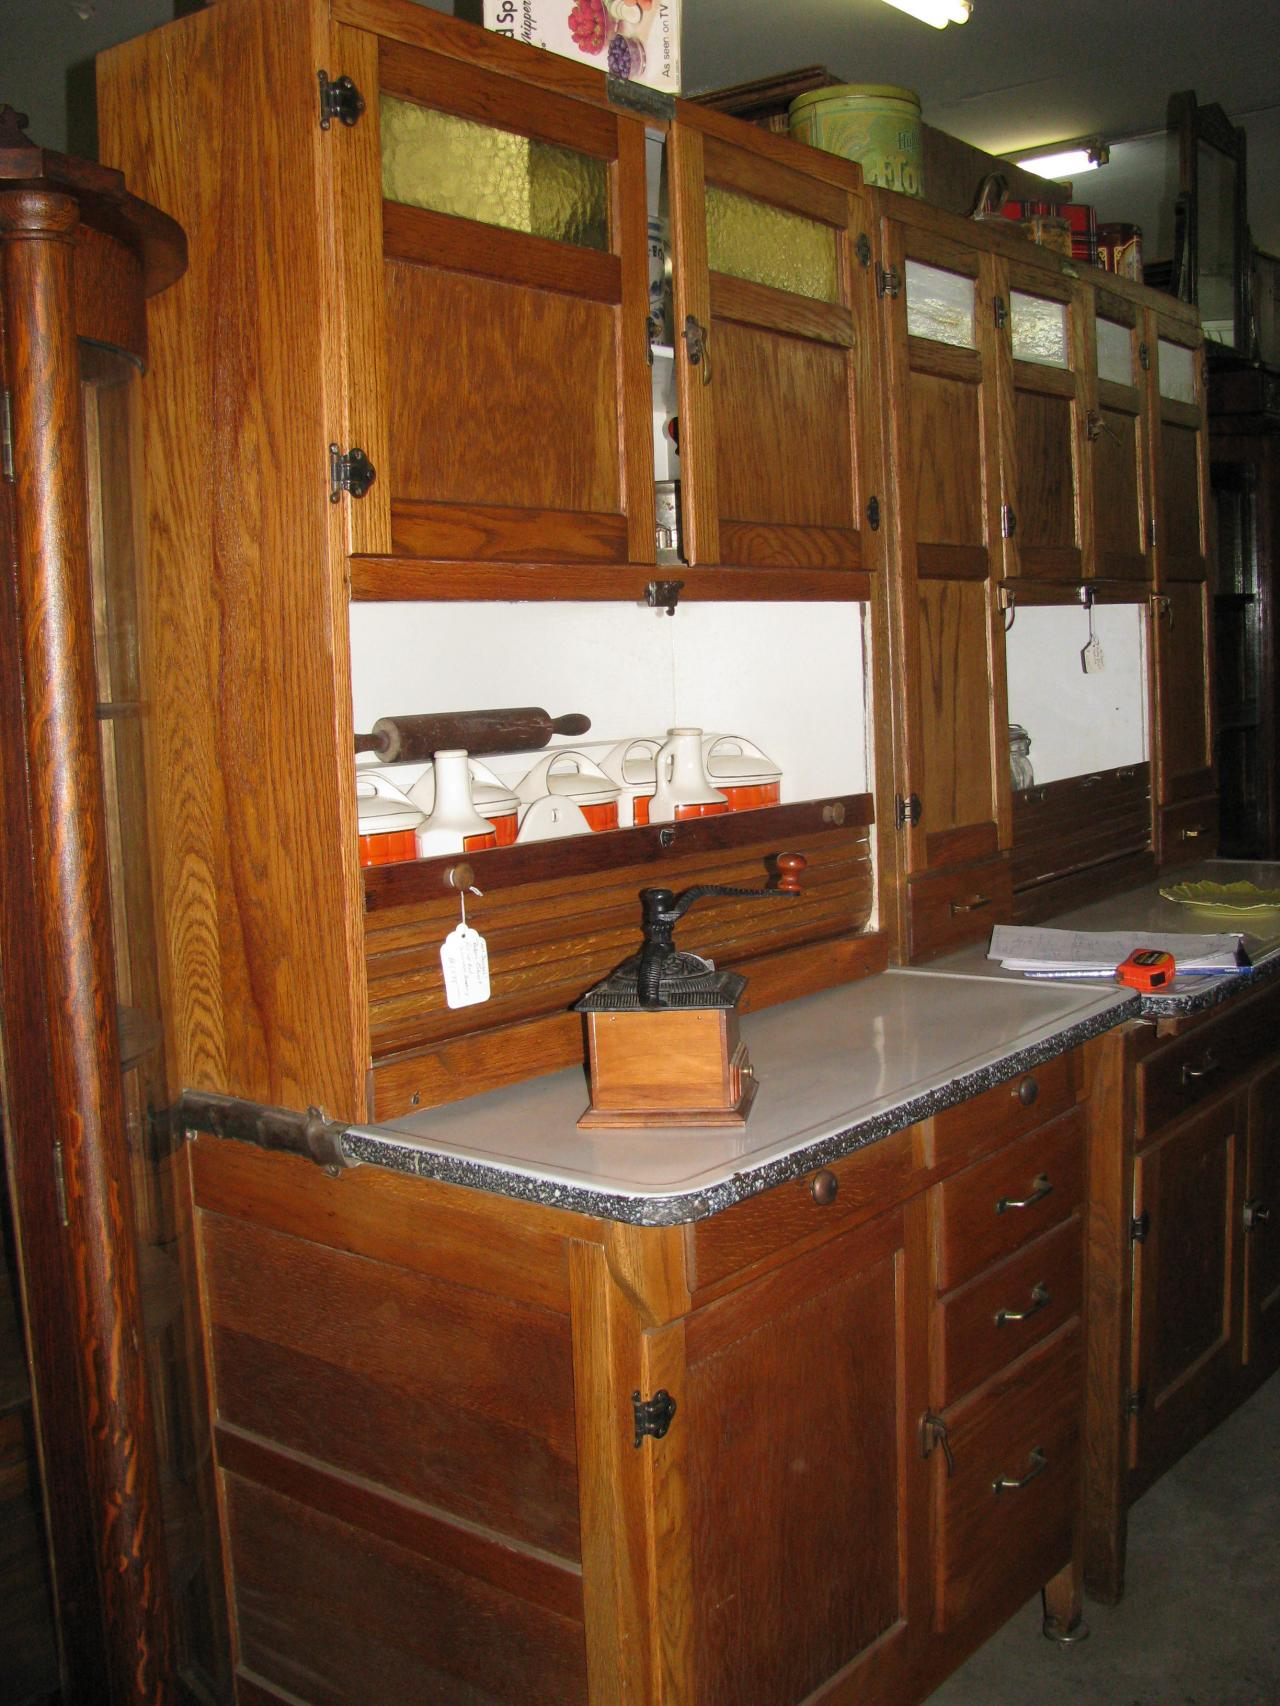 Ordinaire ... McDougall Bakers/Kitchen Cabinet Circa 1916 Disappearing Auto Front  Roll Door ...